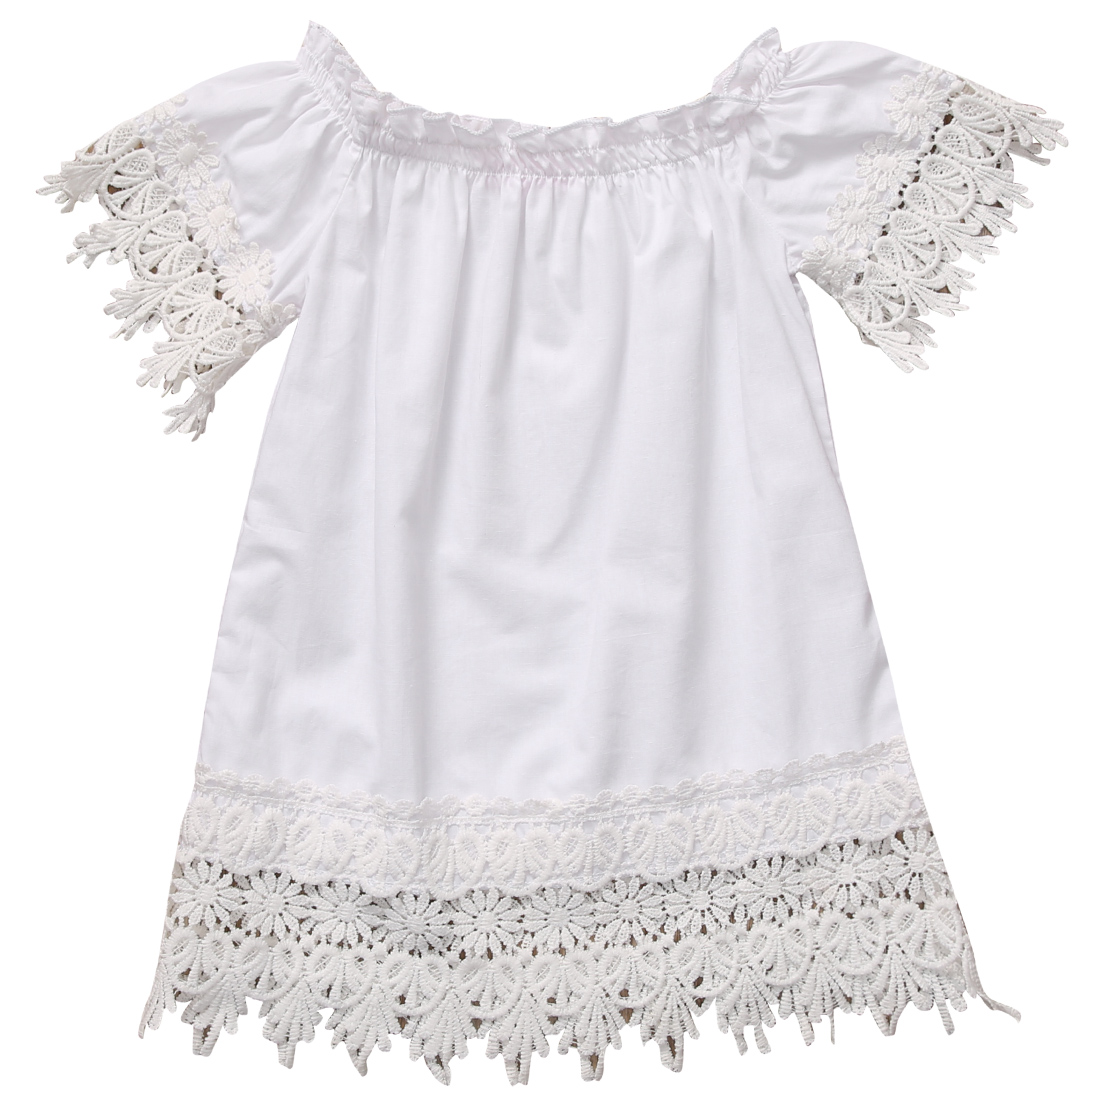 Girls Princess Dresses Kids Baby Girl Princess Party Lace